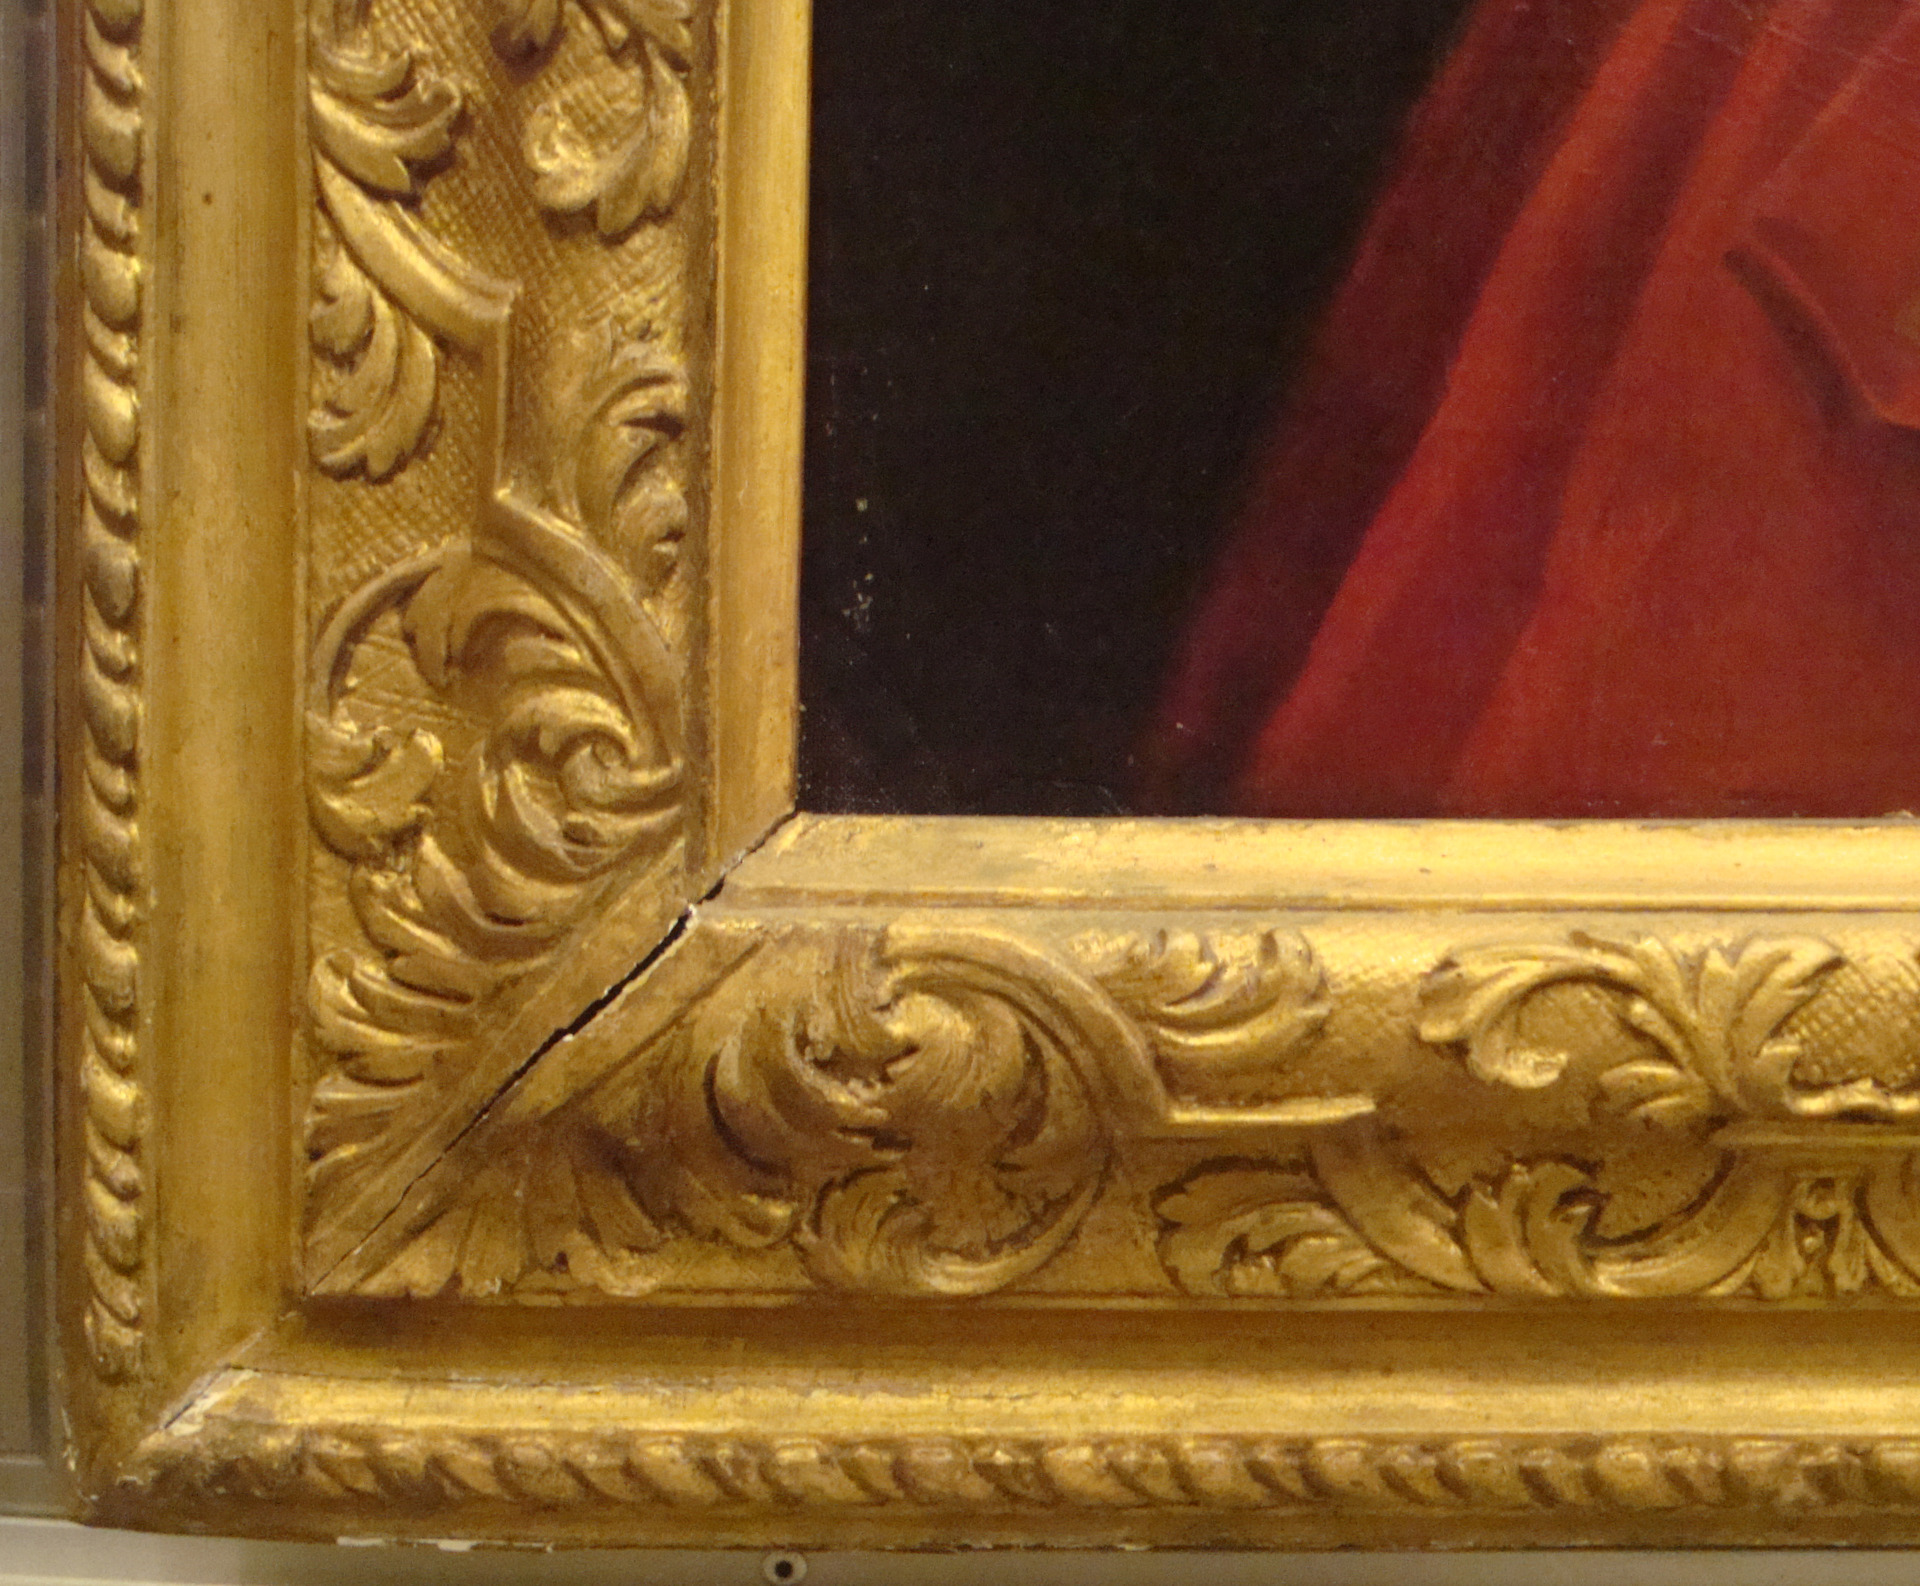 Unknown framemaker, Louis XIV frame, first quarter of the eighteenth century, carved wood, later oil gilding over original water gilding and gesso re-cutting, Yale Center for British Art, Gift of Andrew Cavendish, eleventh Duke of Devonshire